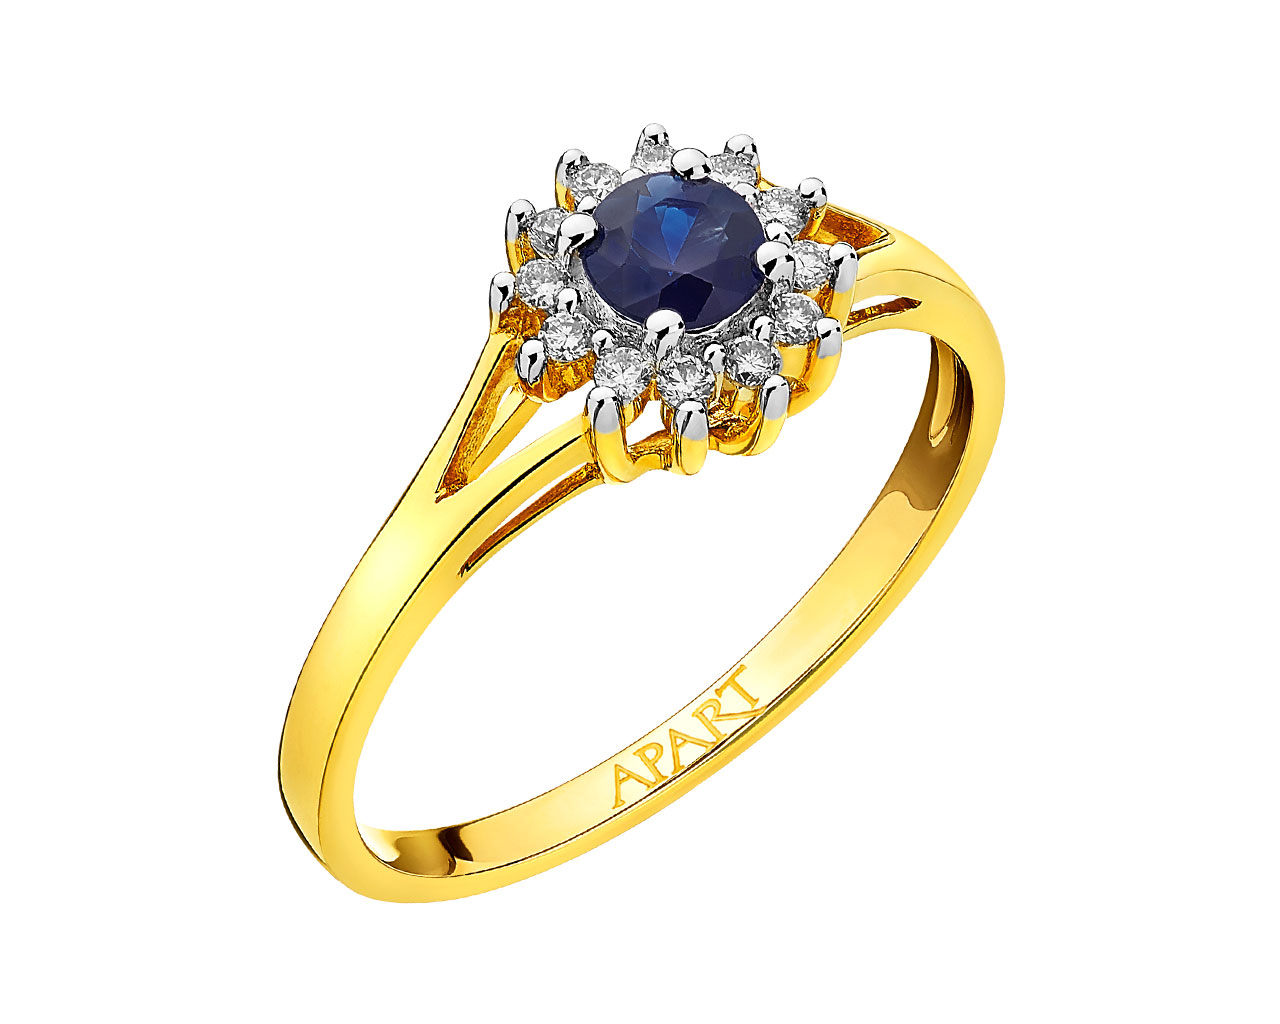 original moore alison ring product and sapphire designer silver by designs gold alisonmooredesigns